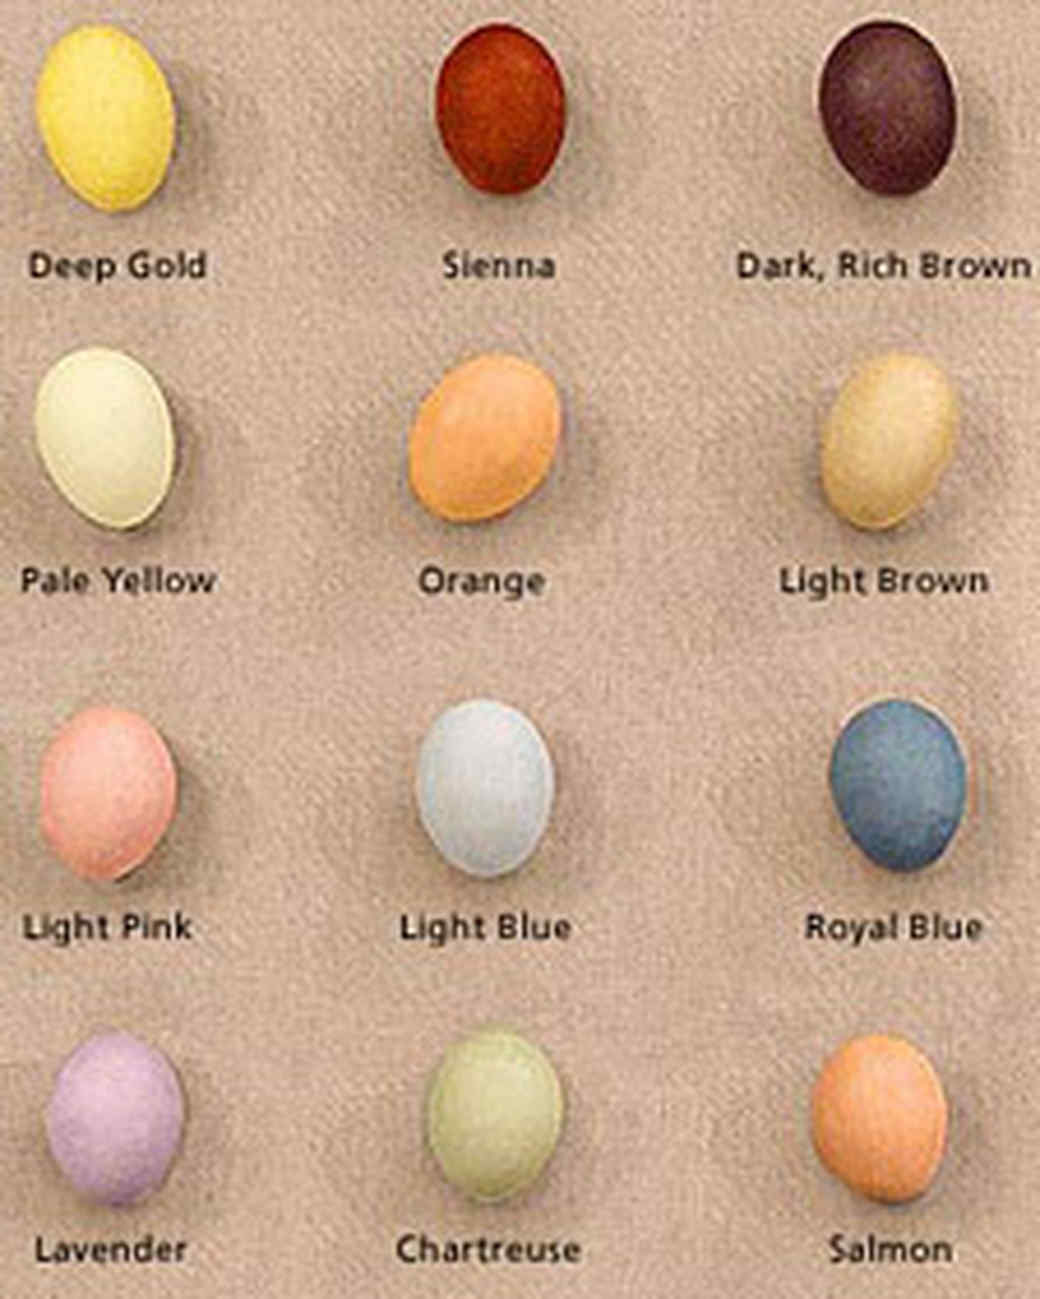 Dyeing eggs naturally martha stewart the tradition of dyeing eggs goes back to medieval times when people made pace eggs to celebrate spring and pasch the original name given to easter or geenschuldenfo Gallery